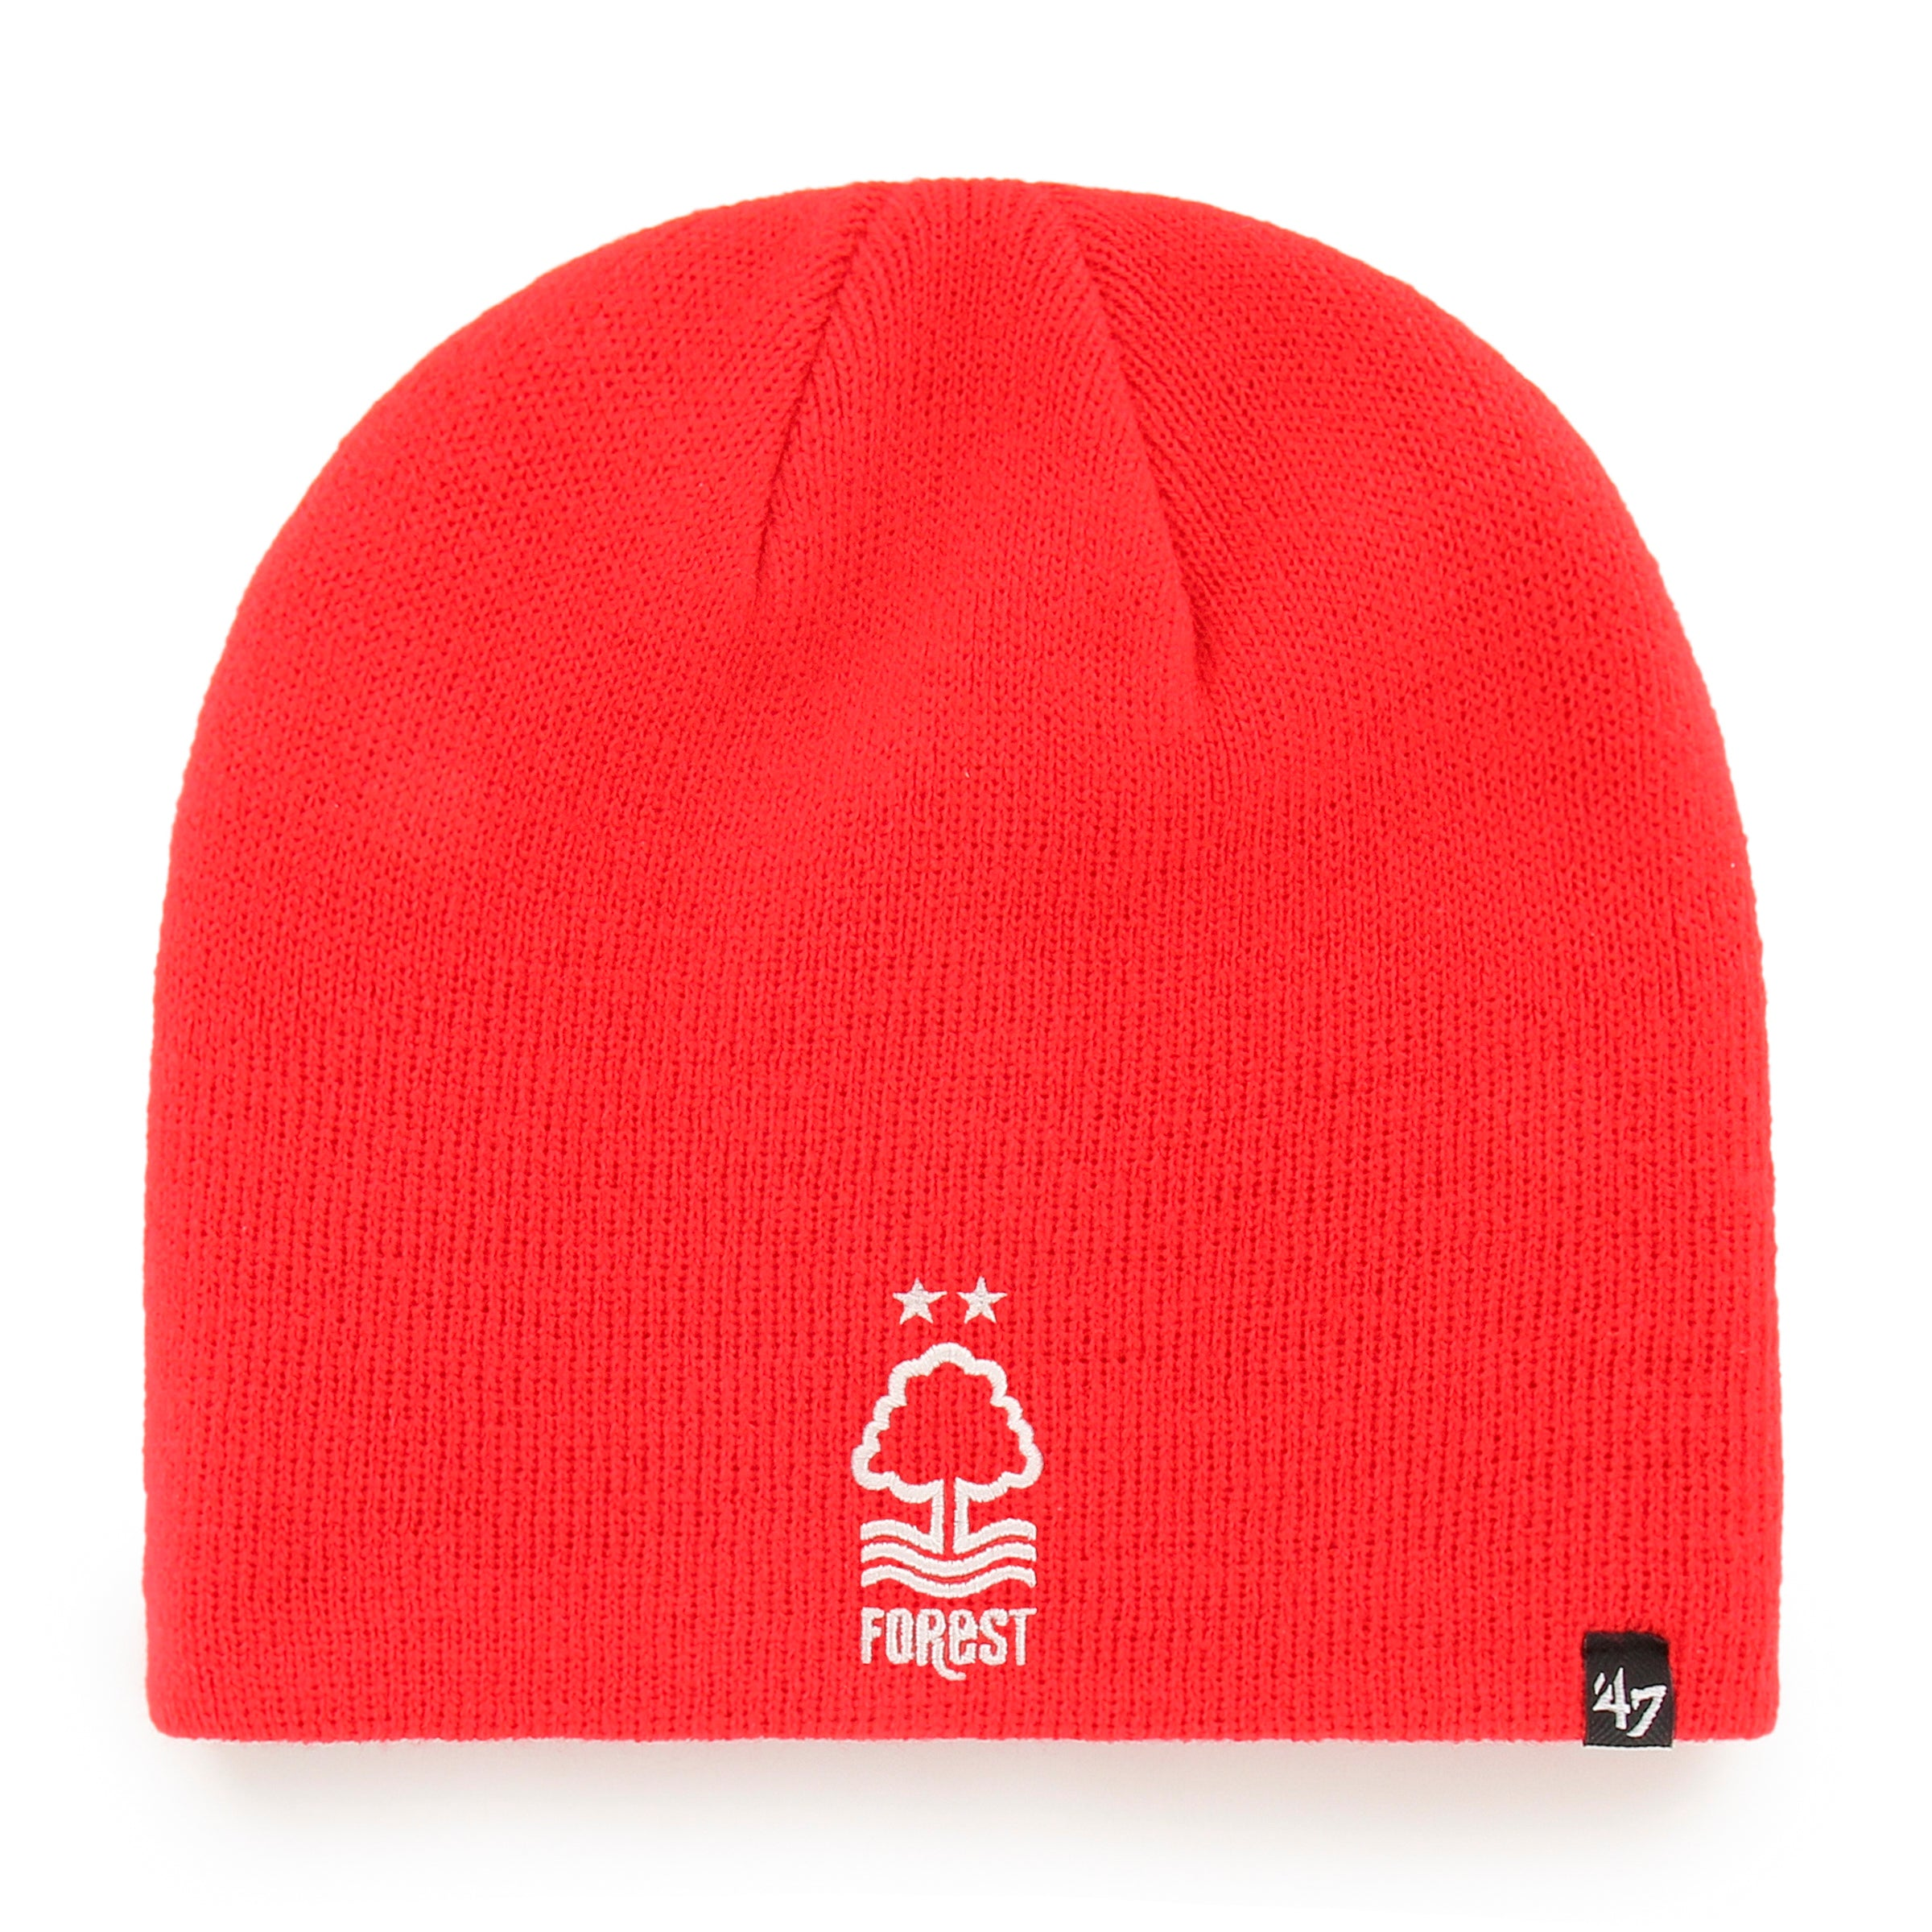 NFFC Red '47 Beanie - Junior